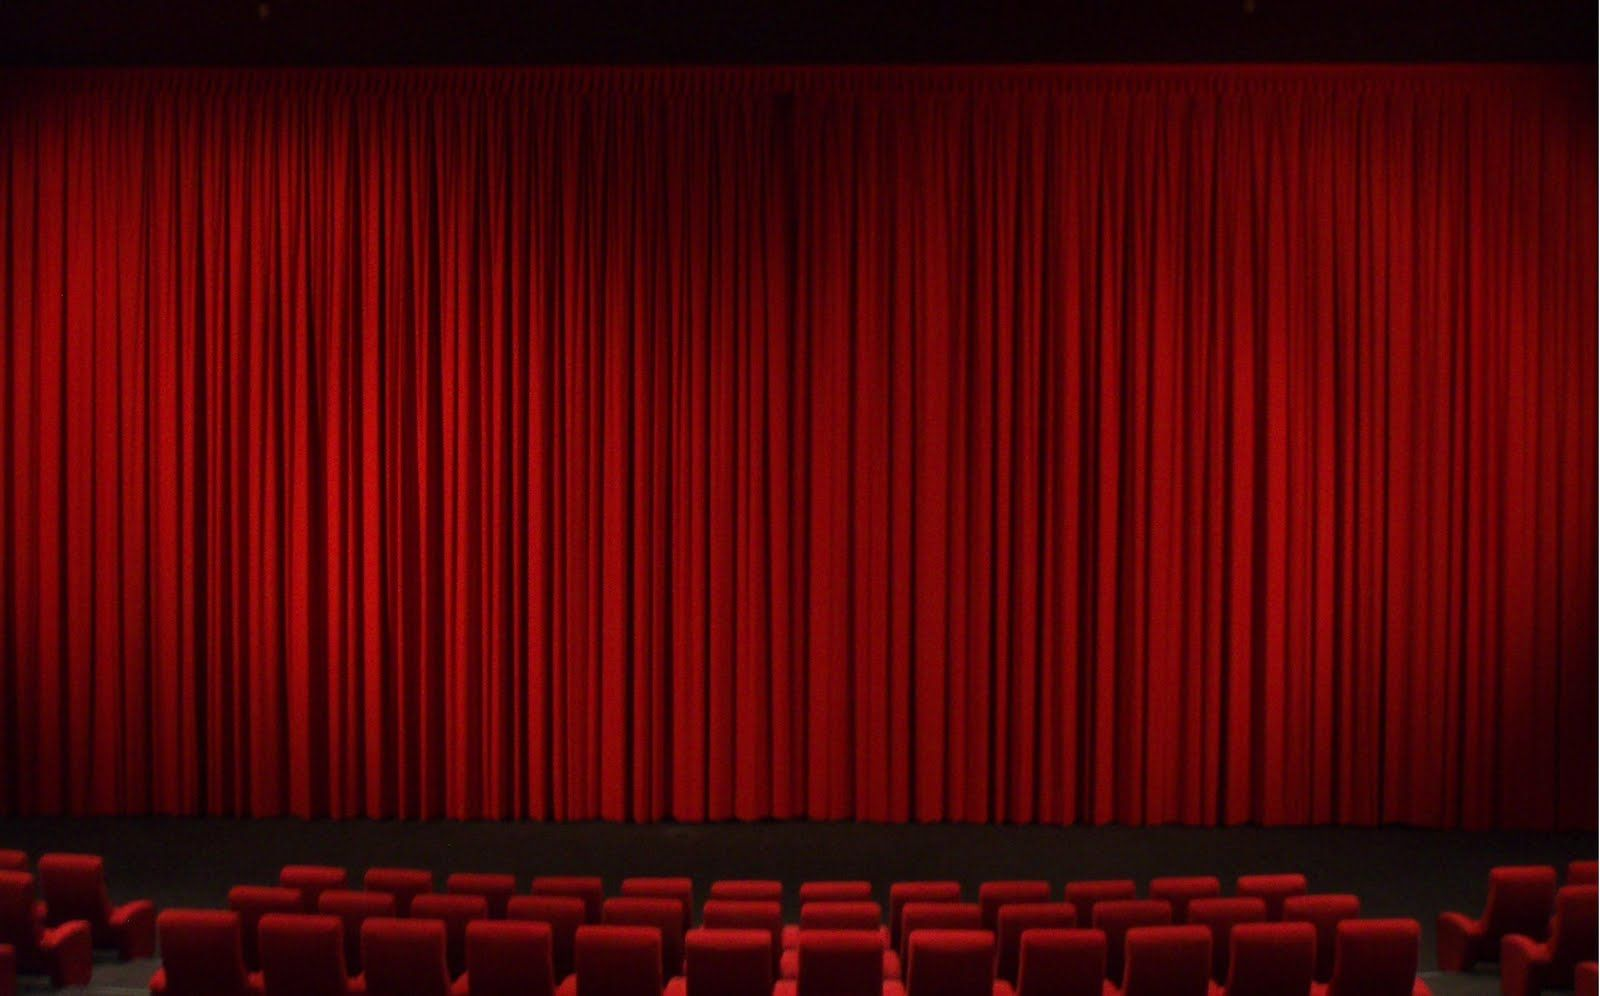 stagecurtaintracks - Stage curtains for Theater Show – home-interior ...